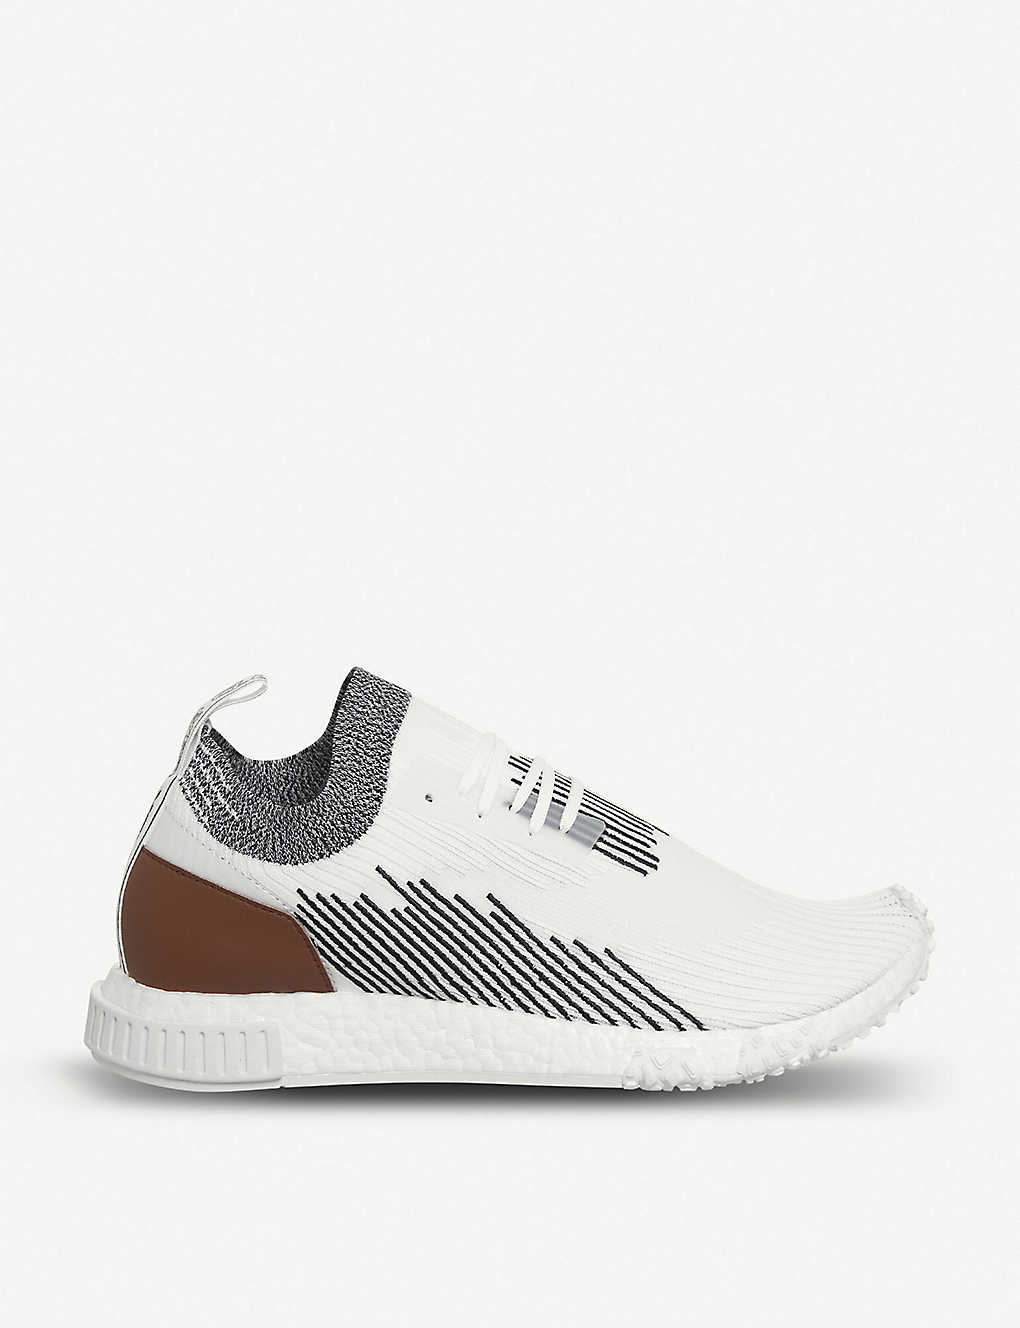 415513ab16981 NMD Racer Primeknit and leather trainers - Monaco red black ...